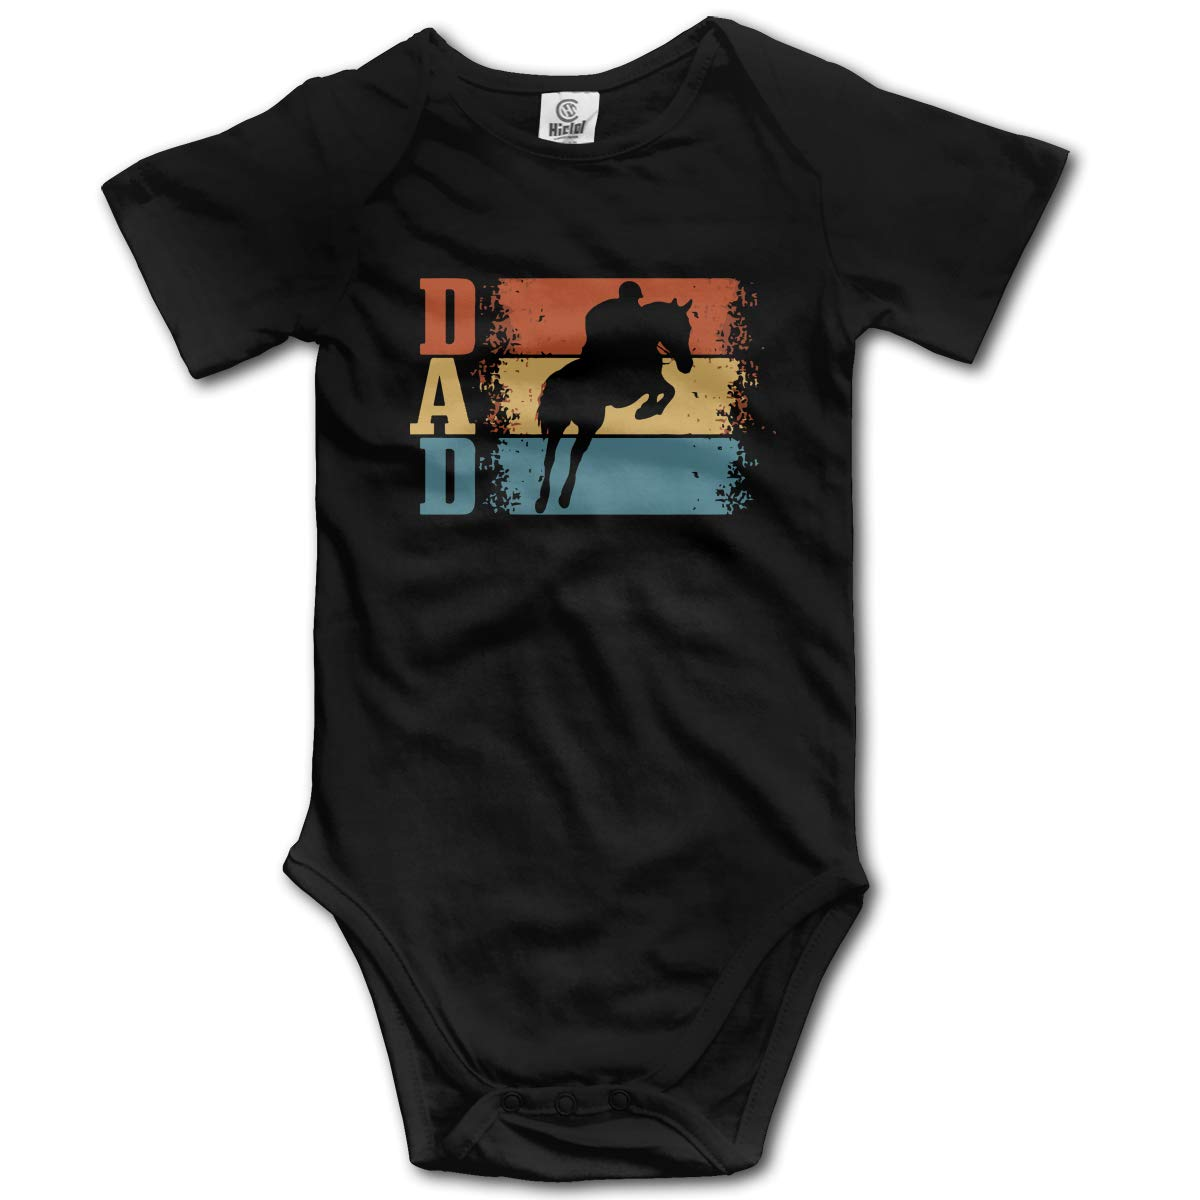 Dad Vintage Horse Riding Baby Boys Comfortable 100/% Cotton Short-Sleeve Bodysuit